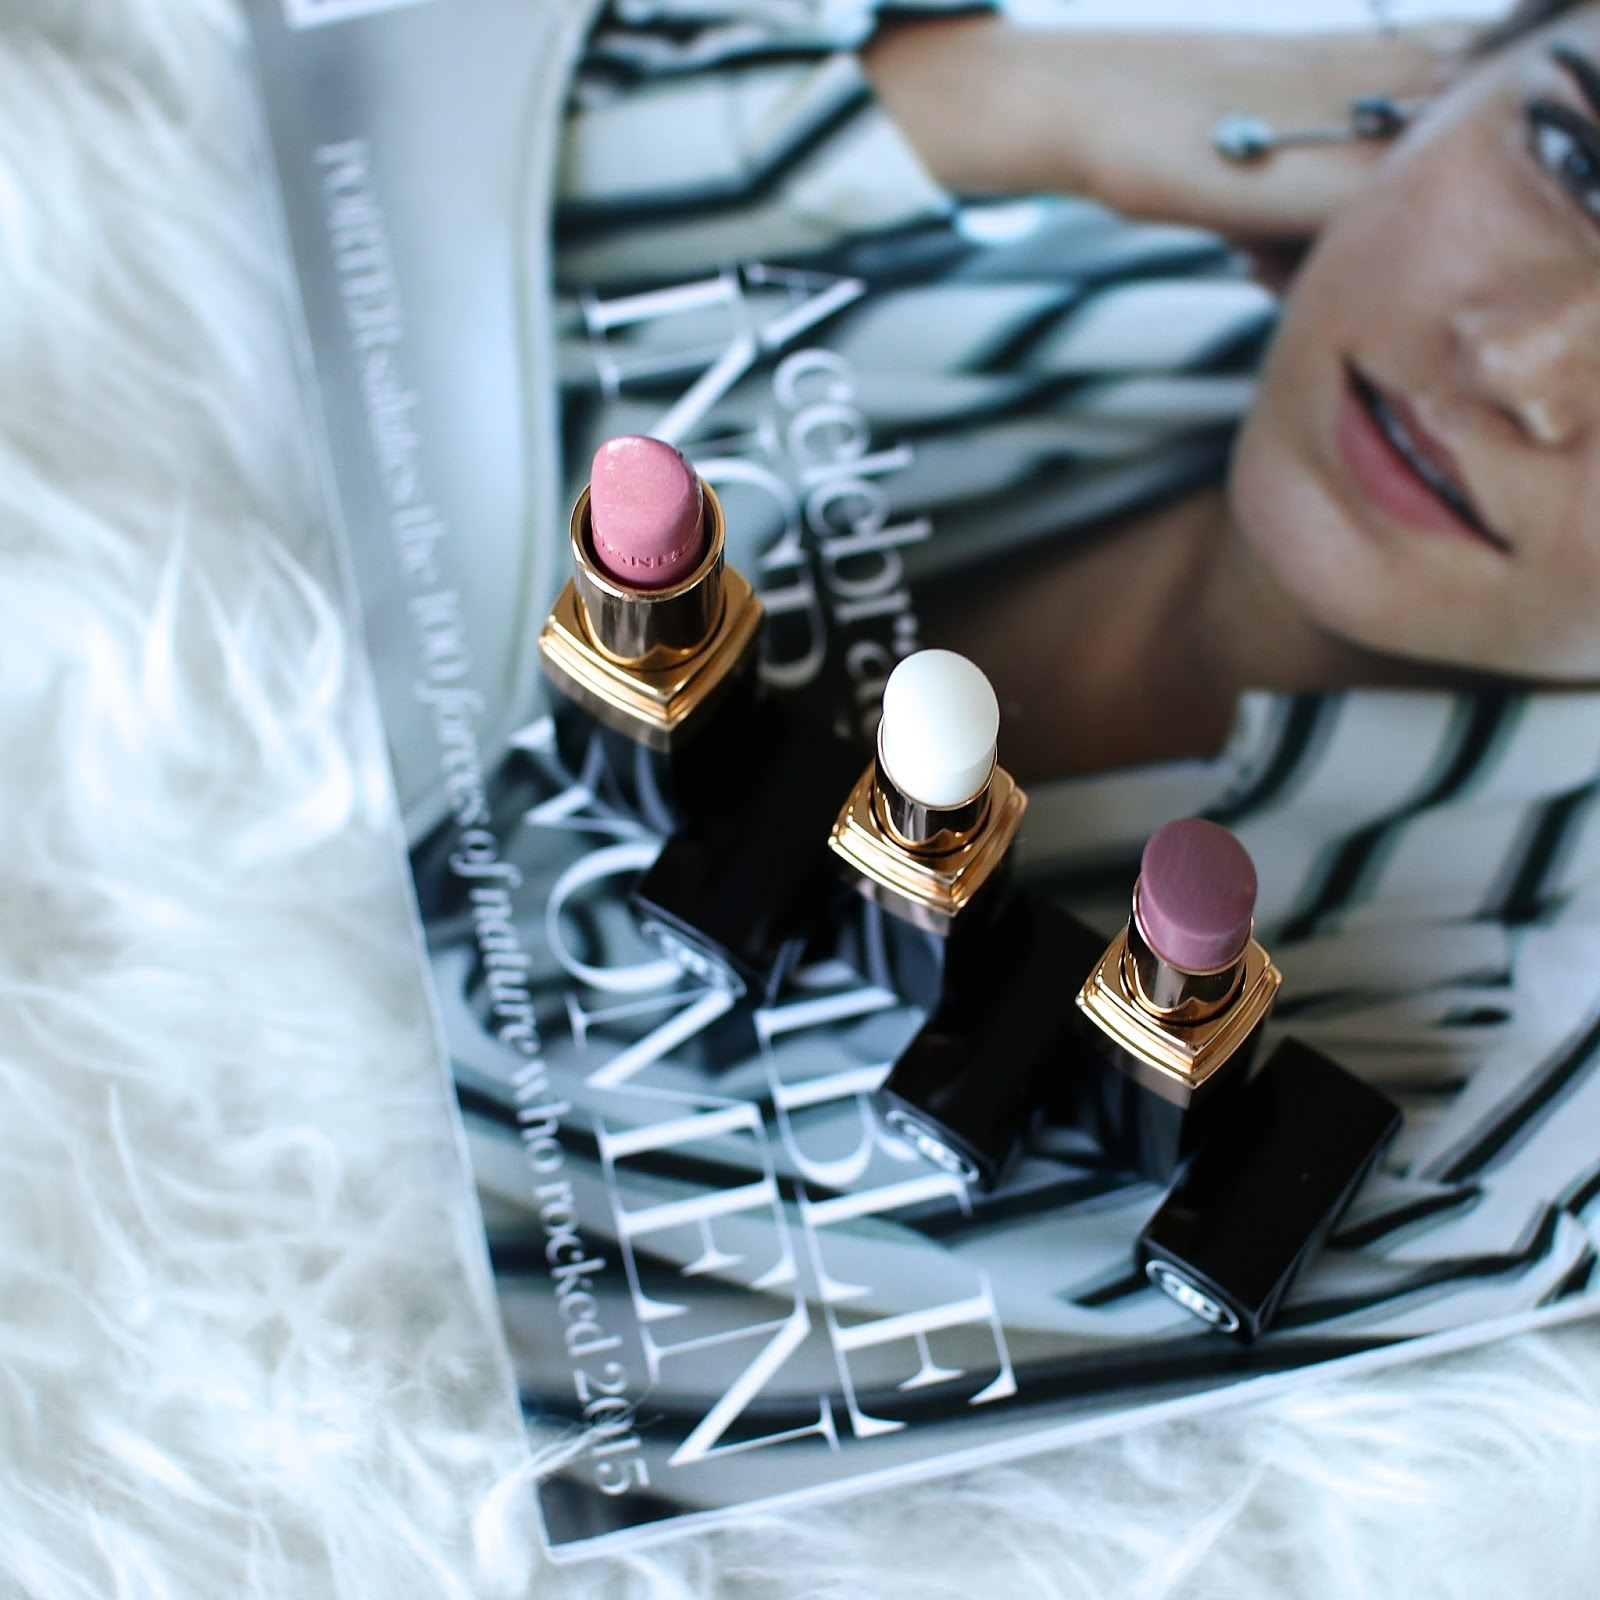 the best chanel lipsticks and review